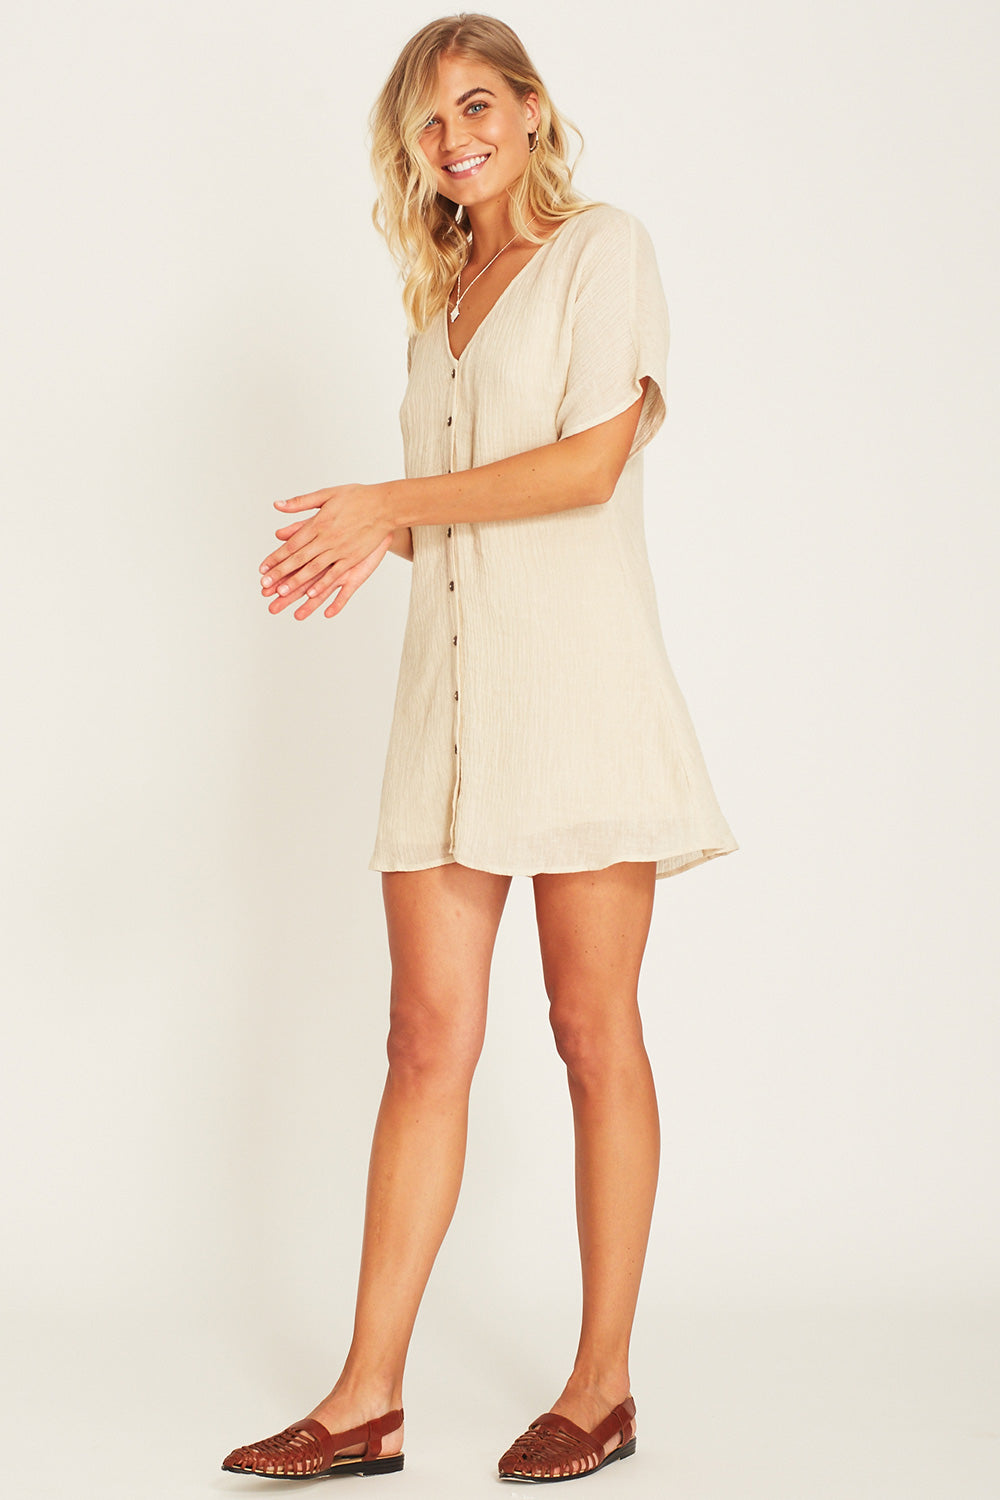 Meika Linen Mini Dress in Oatmeal